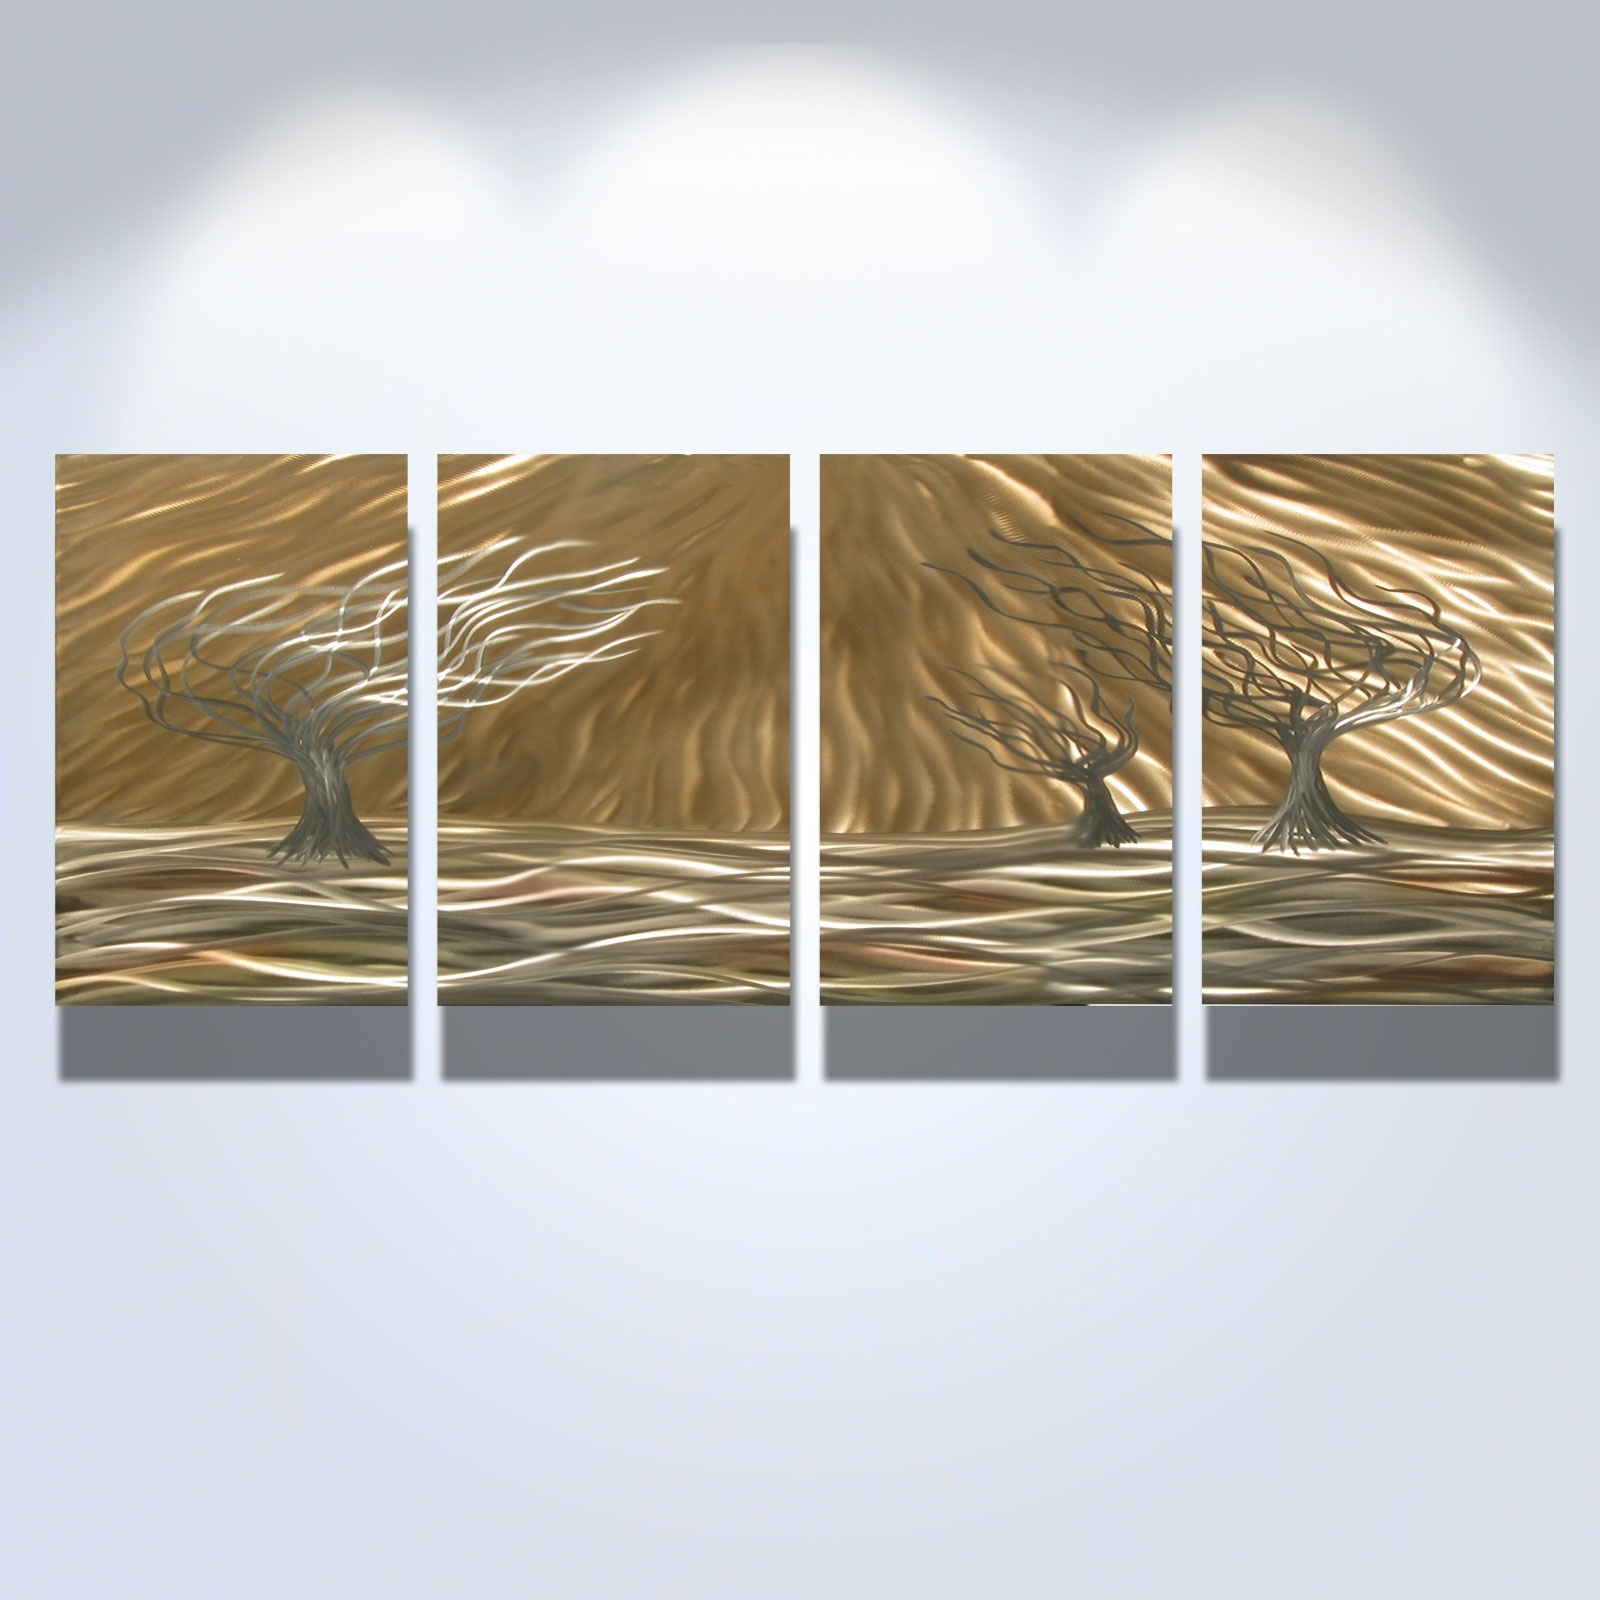 3 Trees 4 Panel – Abstract Metal Wall Art Contemporary Modern Pertaining To Best And Newest Abstract Metal Wall Art Panels (View 4 of 20)